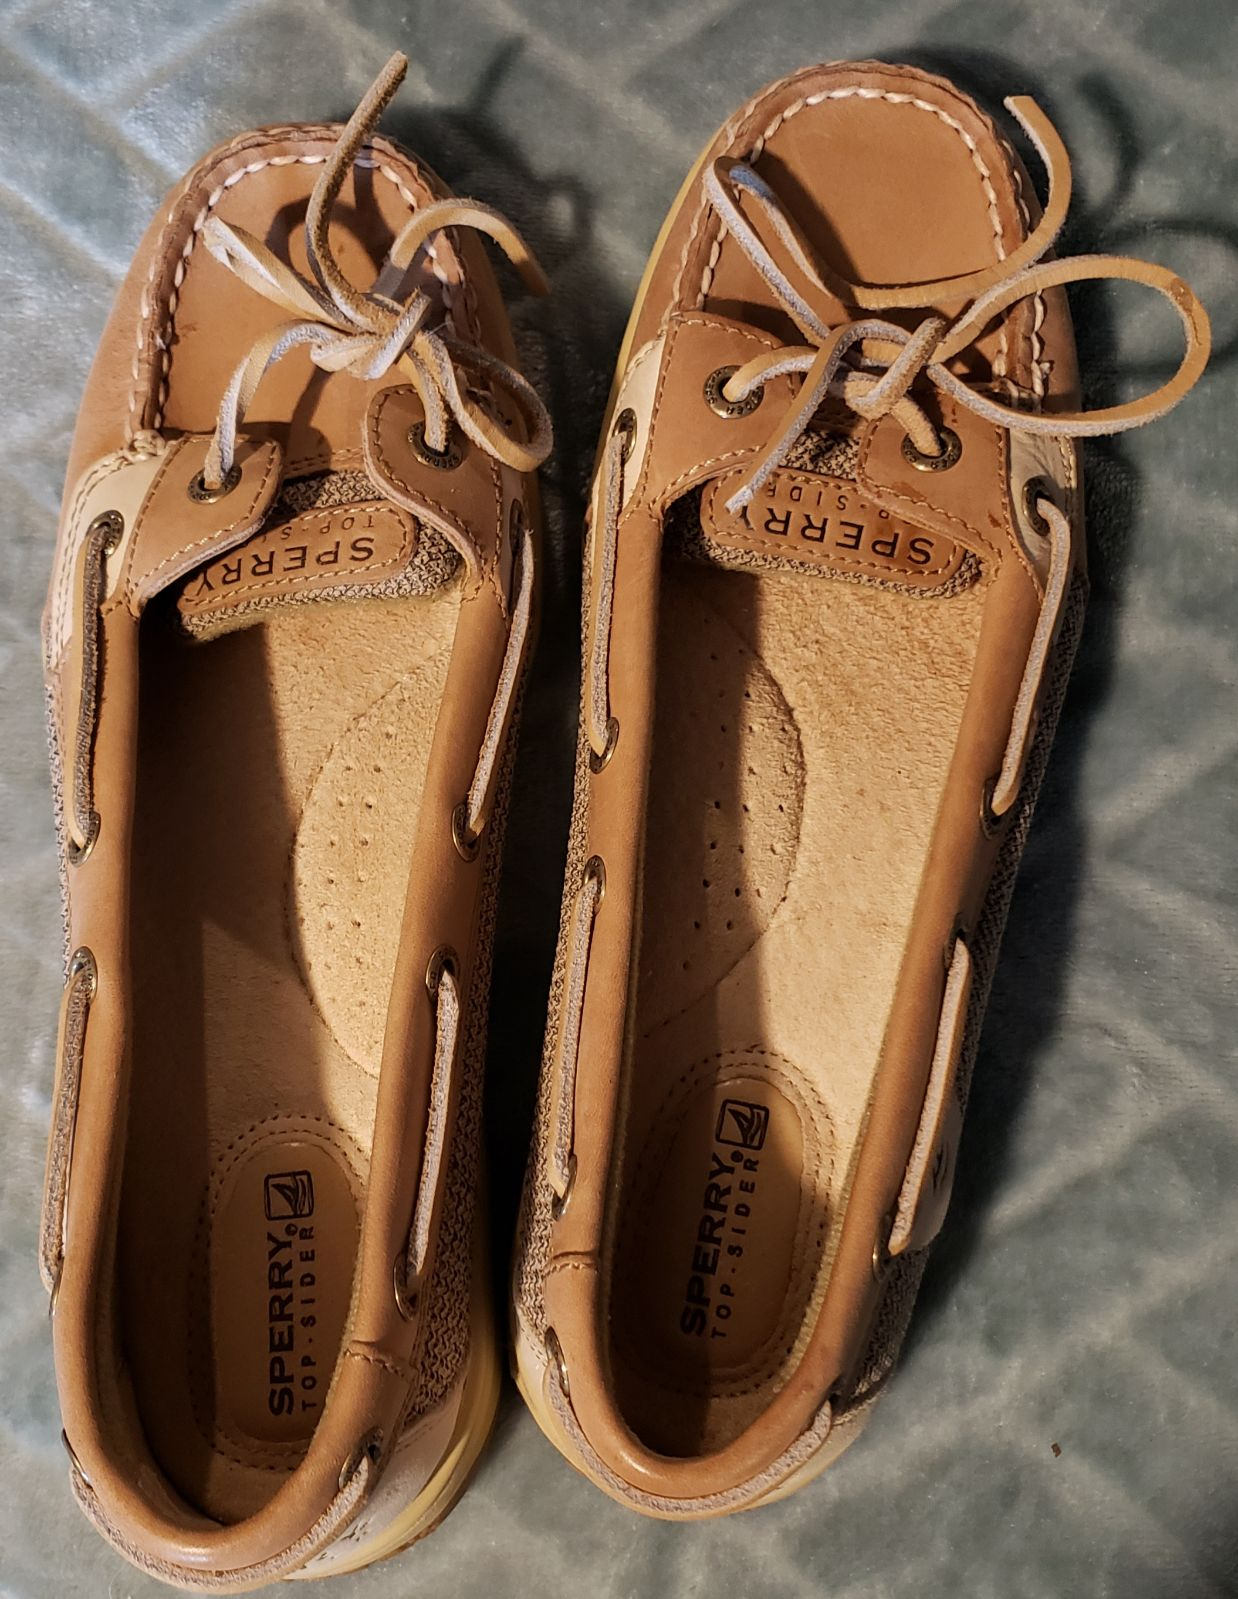 Sperry top sider shoes size 7.5M